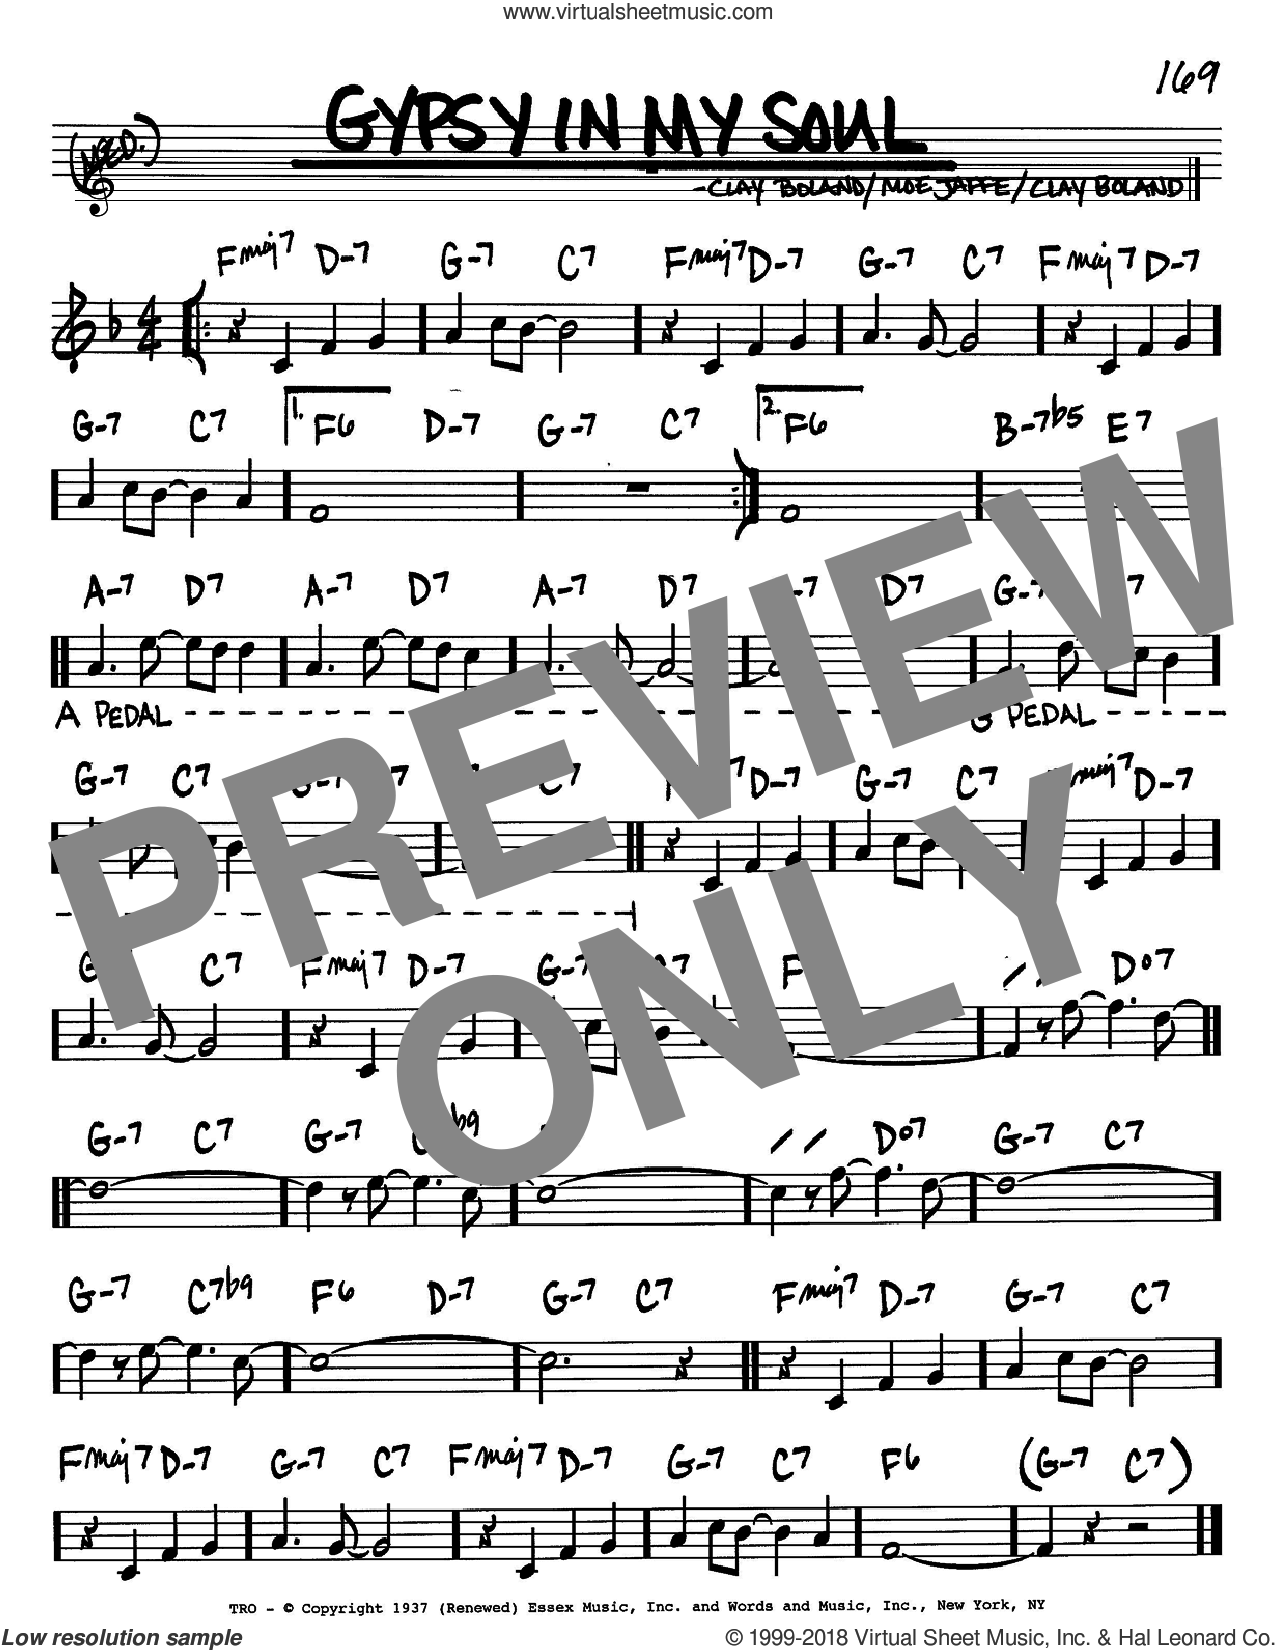 Gypsy In My Soul sheet music for voice and other instruments (Bb) by Clay Boland and Moe Jaffe. Score Image Preview.